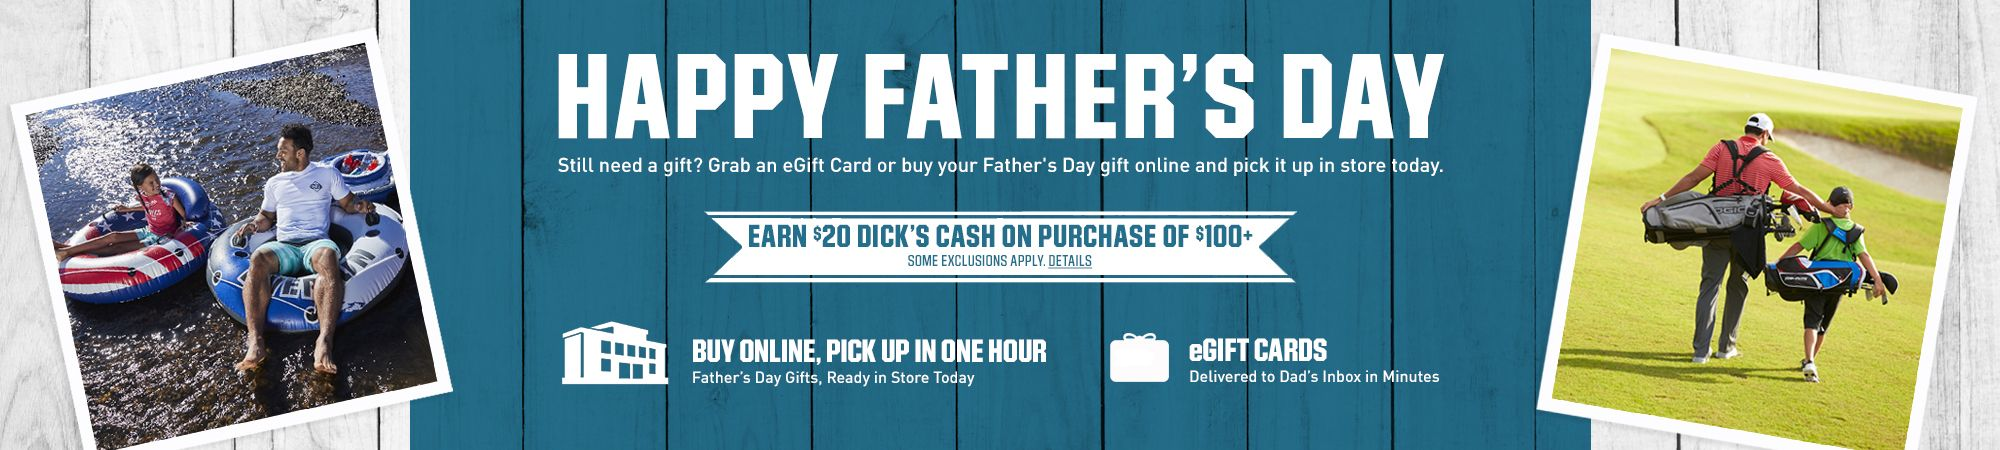 Still need a gift? Grab an eGift Card or buy your Father's Day gift online and pick it up in store today.